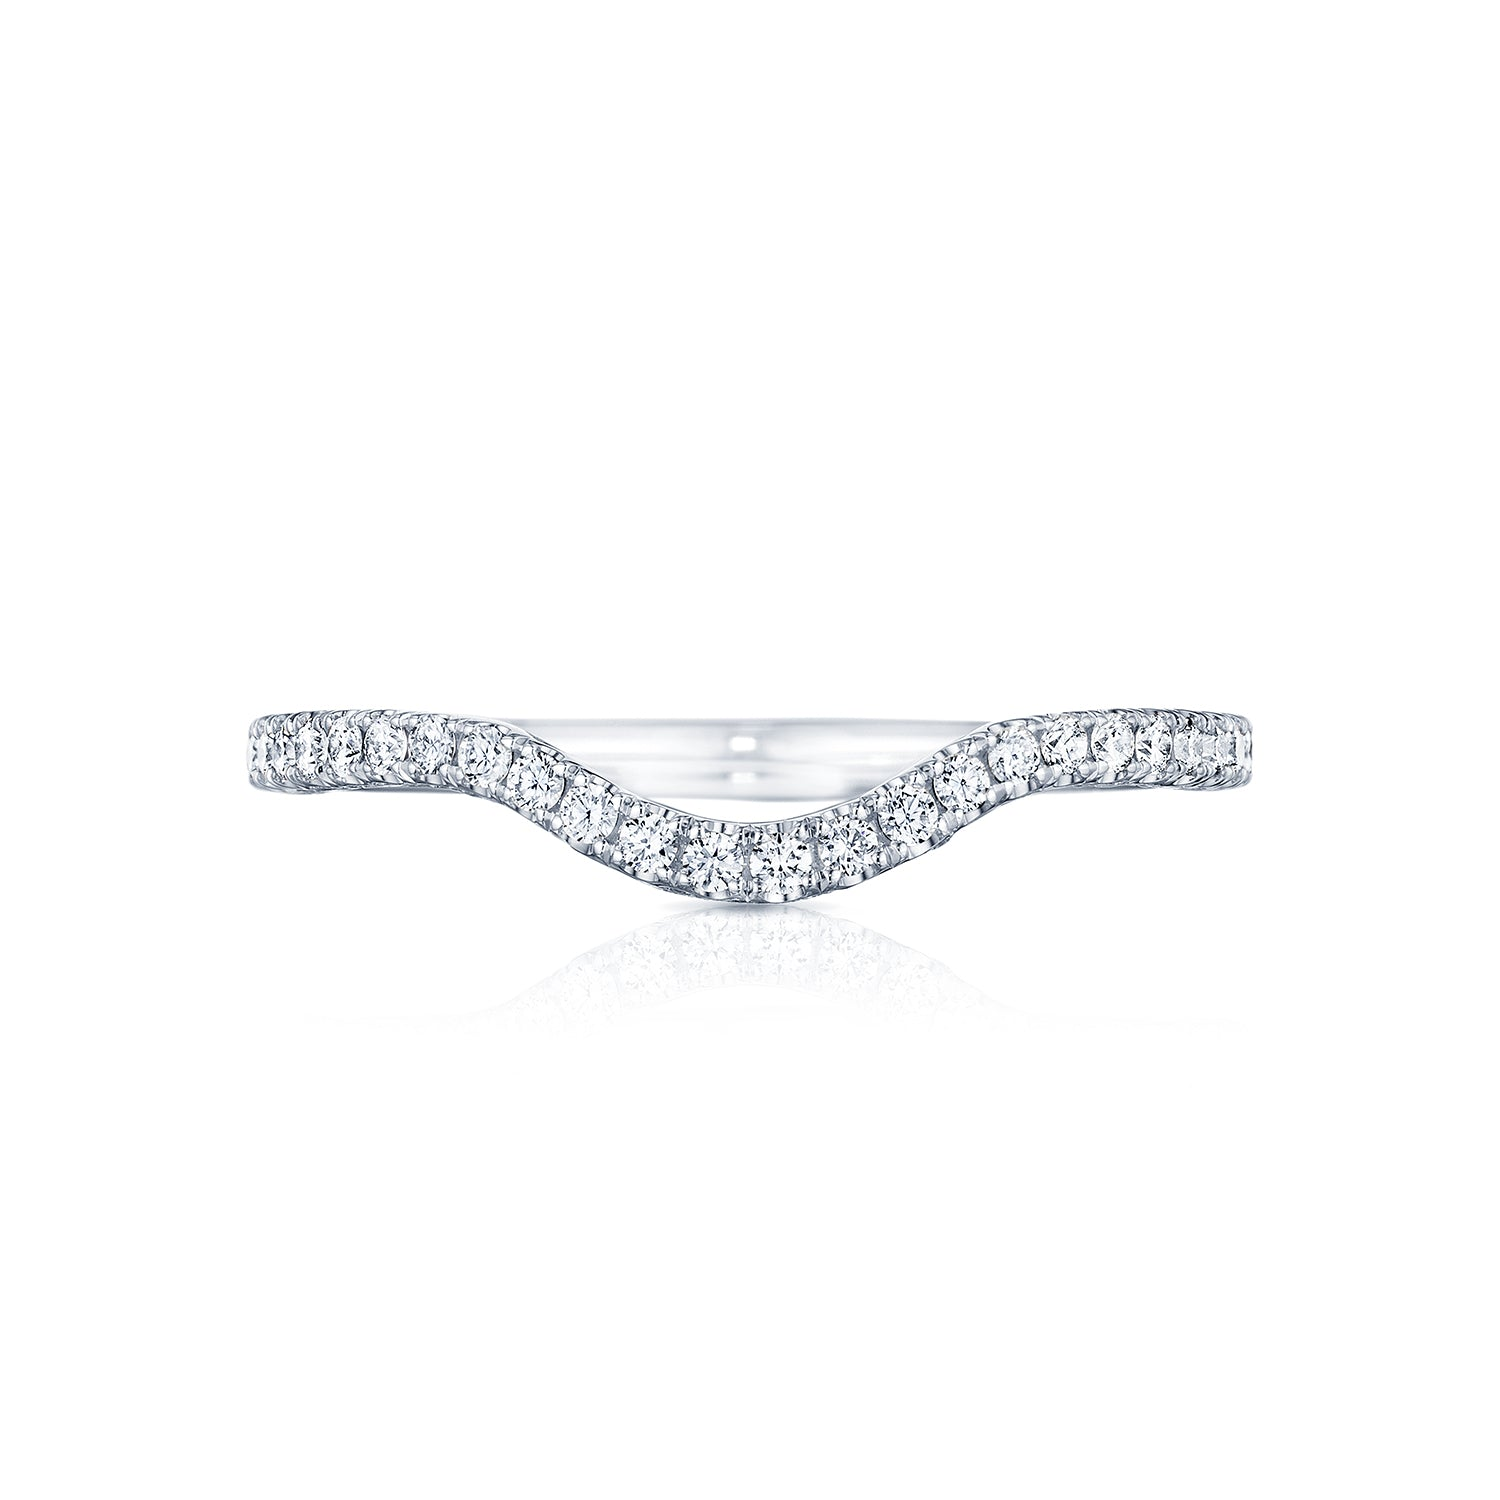 Tacori 'Petite Crescent' Contoured Wedding Band